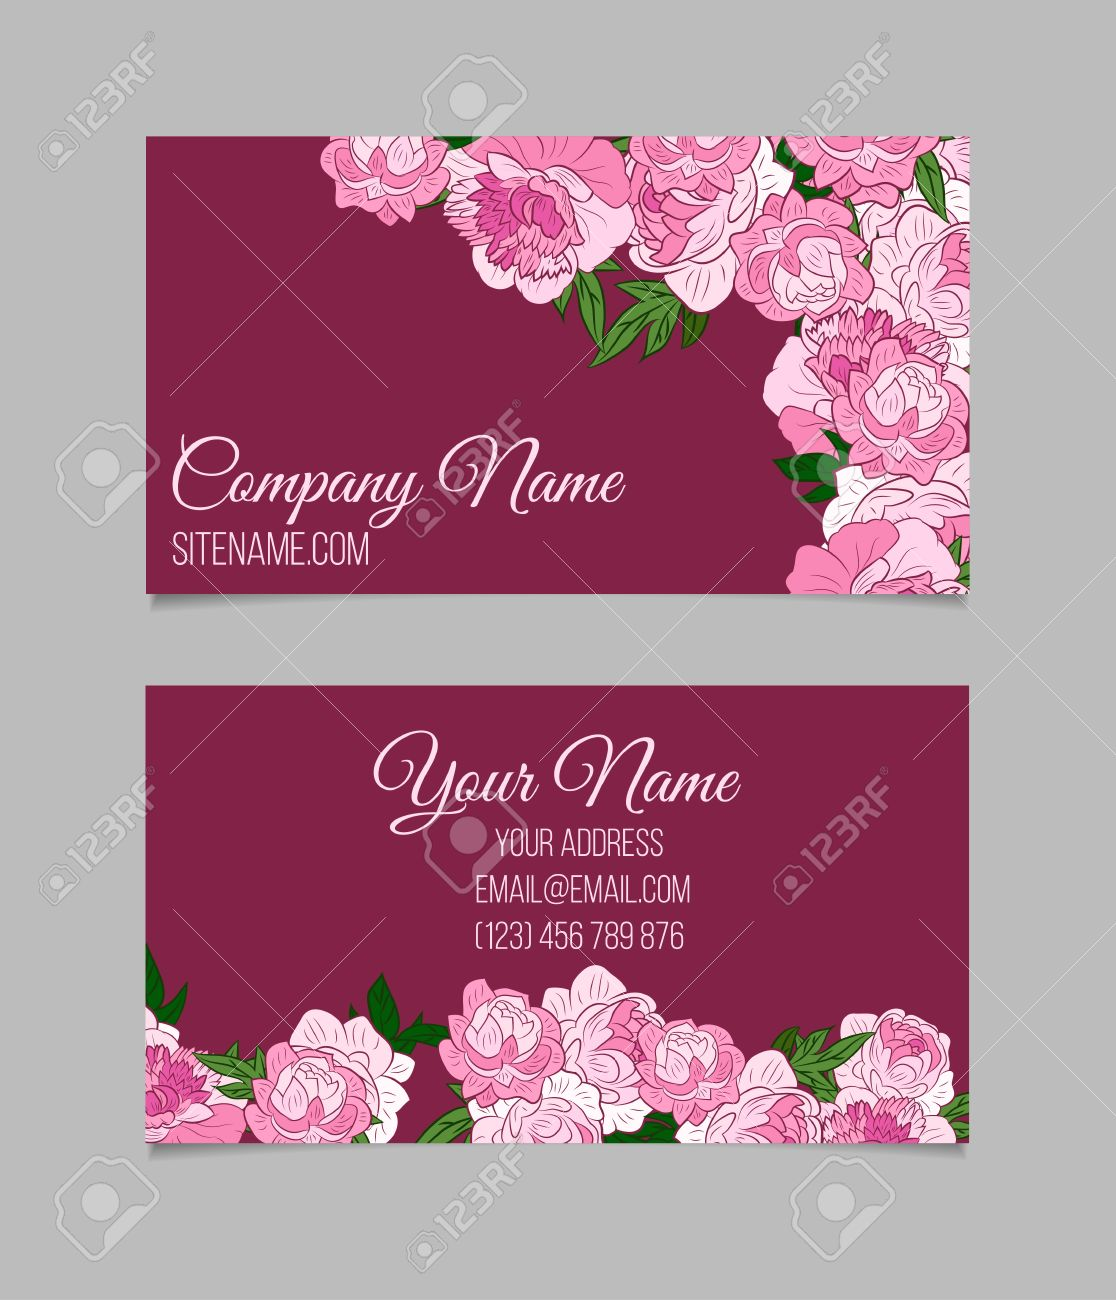 Doublesided Floral Business Card Template With Beautiful Peonies - Beautiful business card templates